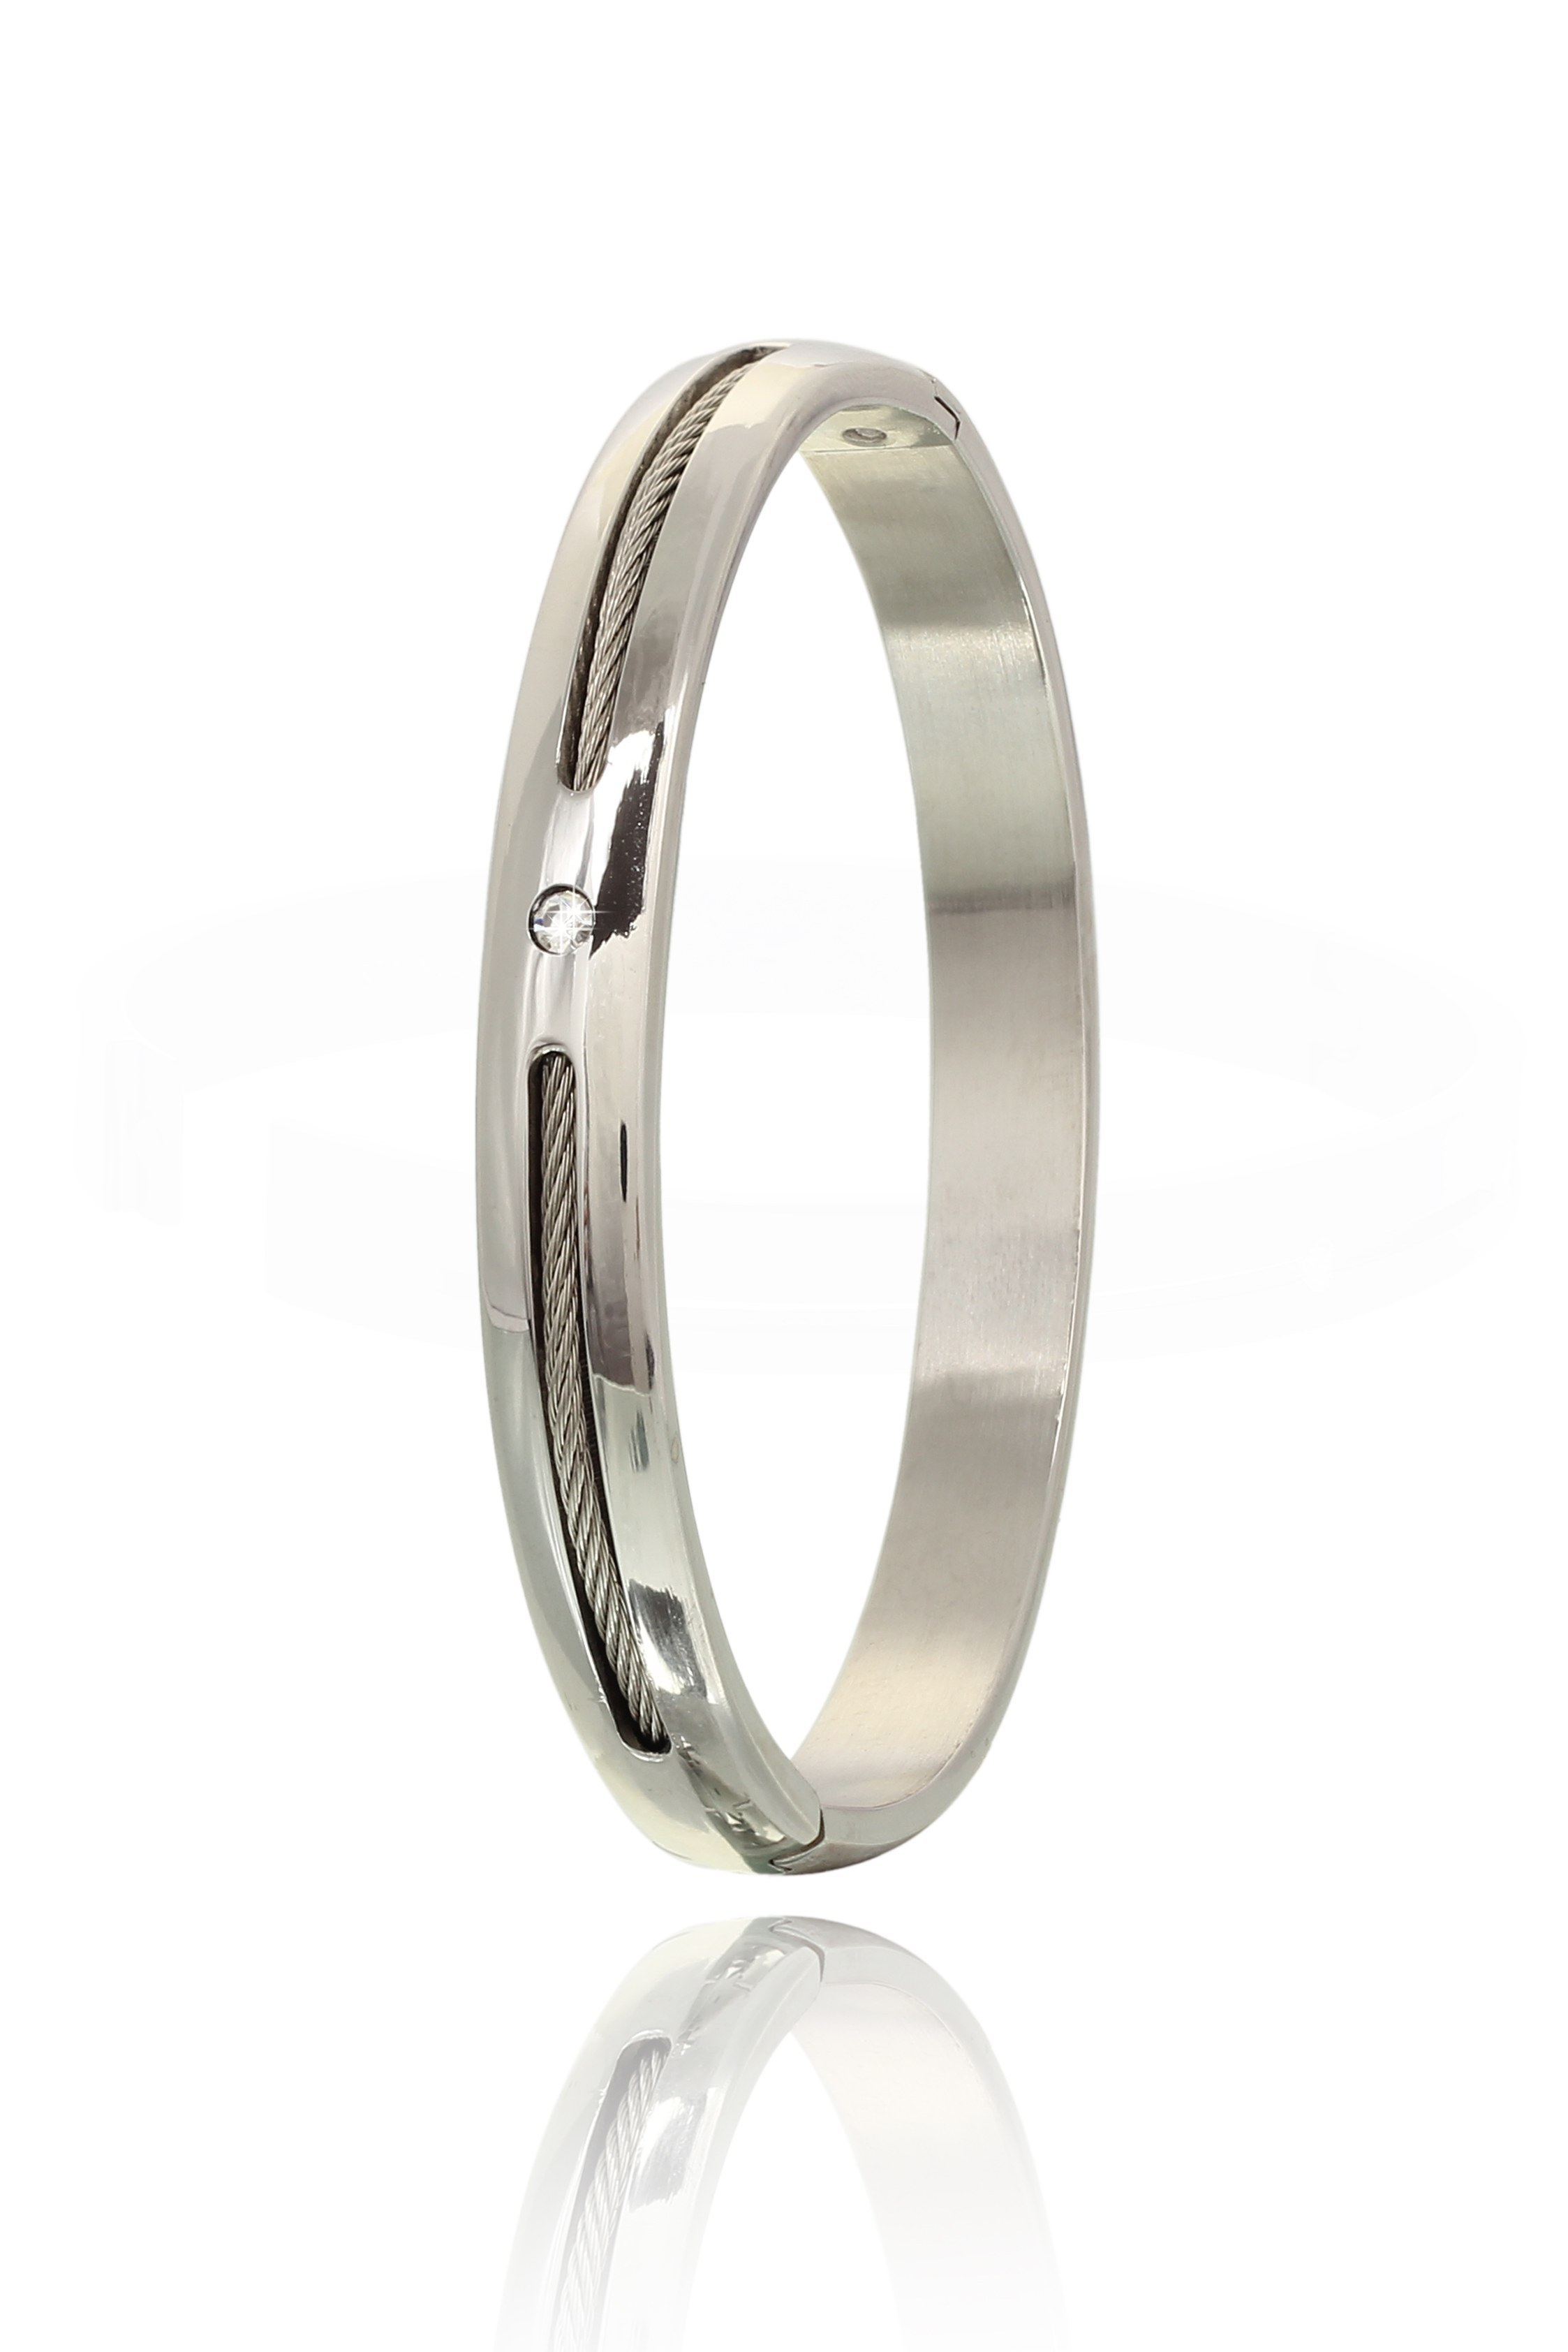 Stainless Steel Men Bracelet with Zircons available at Craftsvilla for Rs.3399